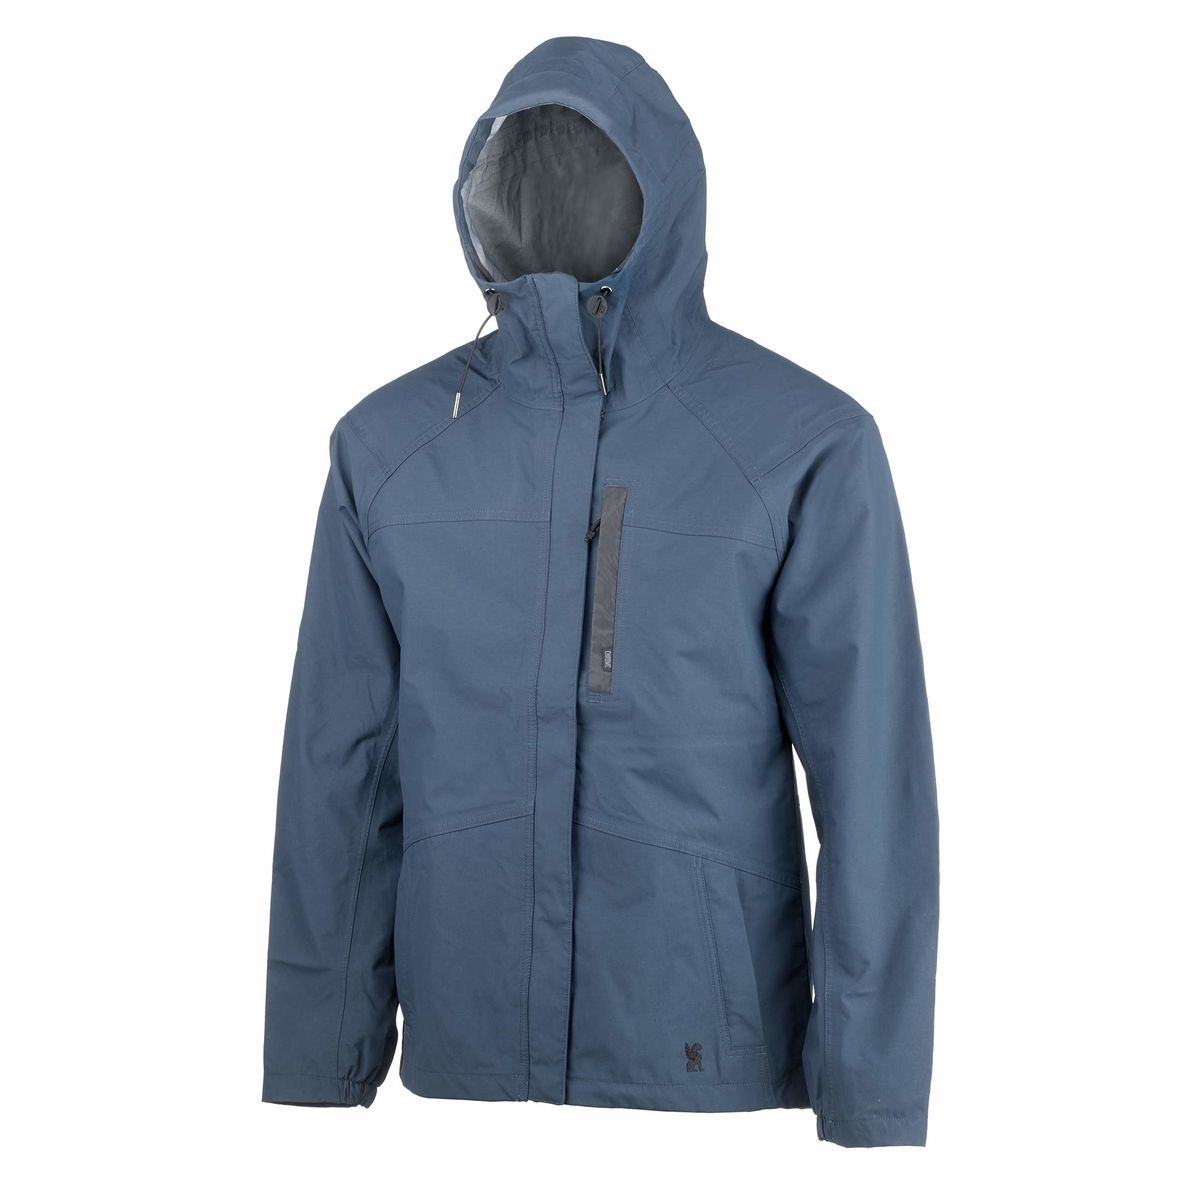 MEN'S STORM COBRA 2.0 waterproof jacket